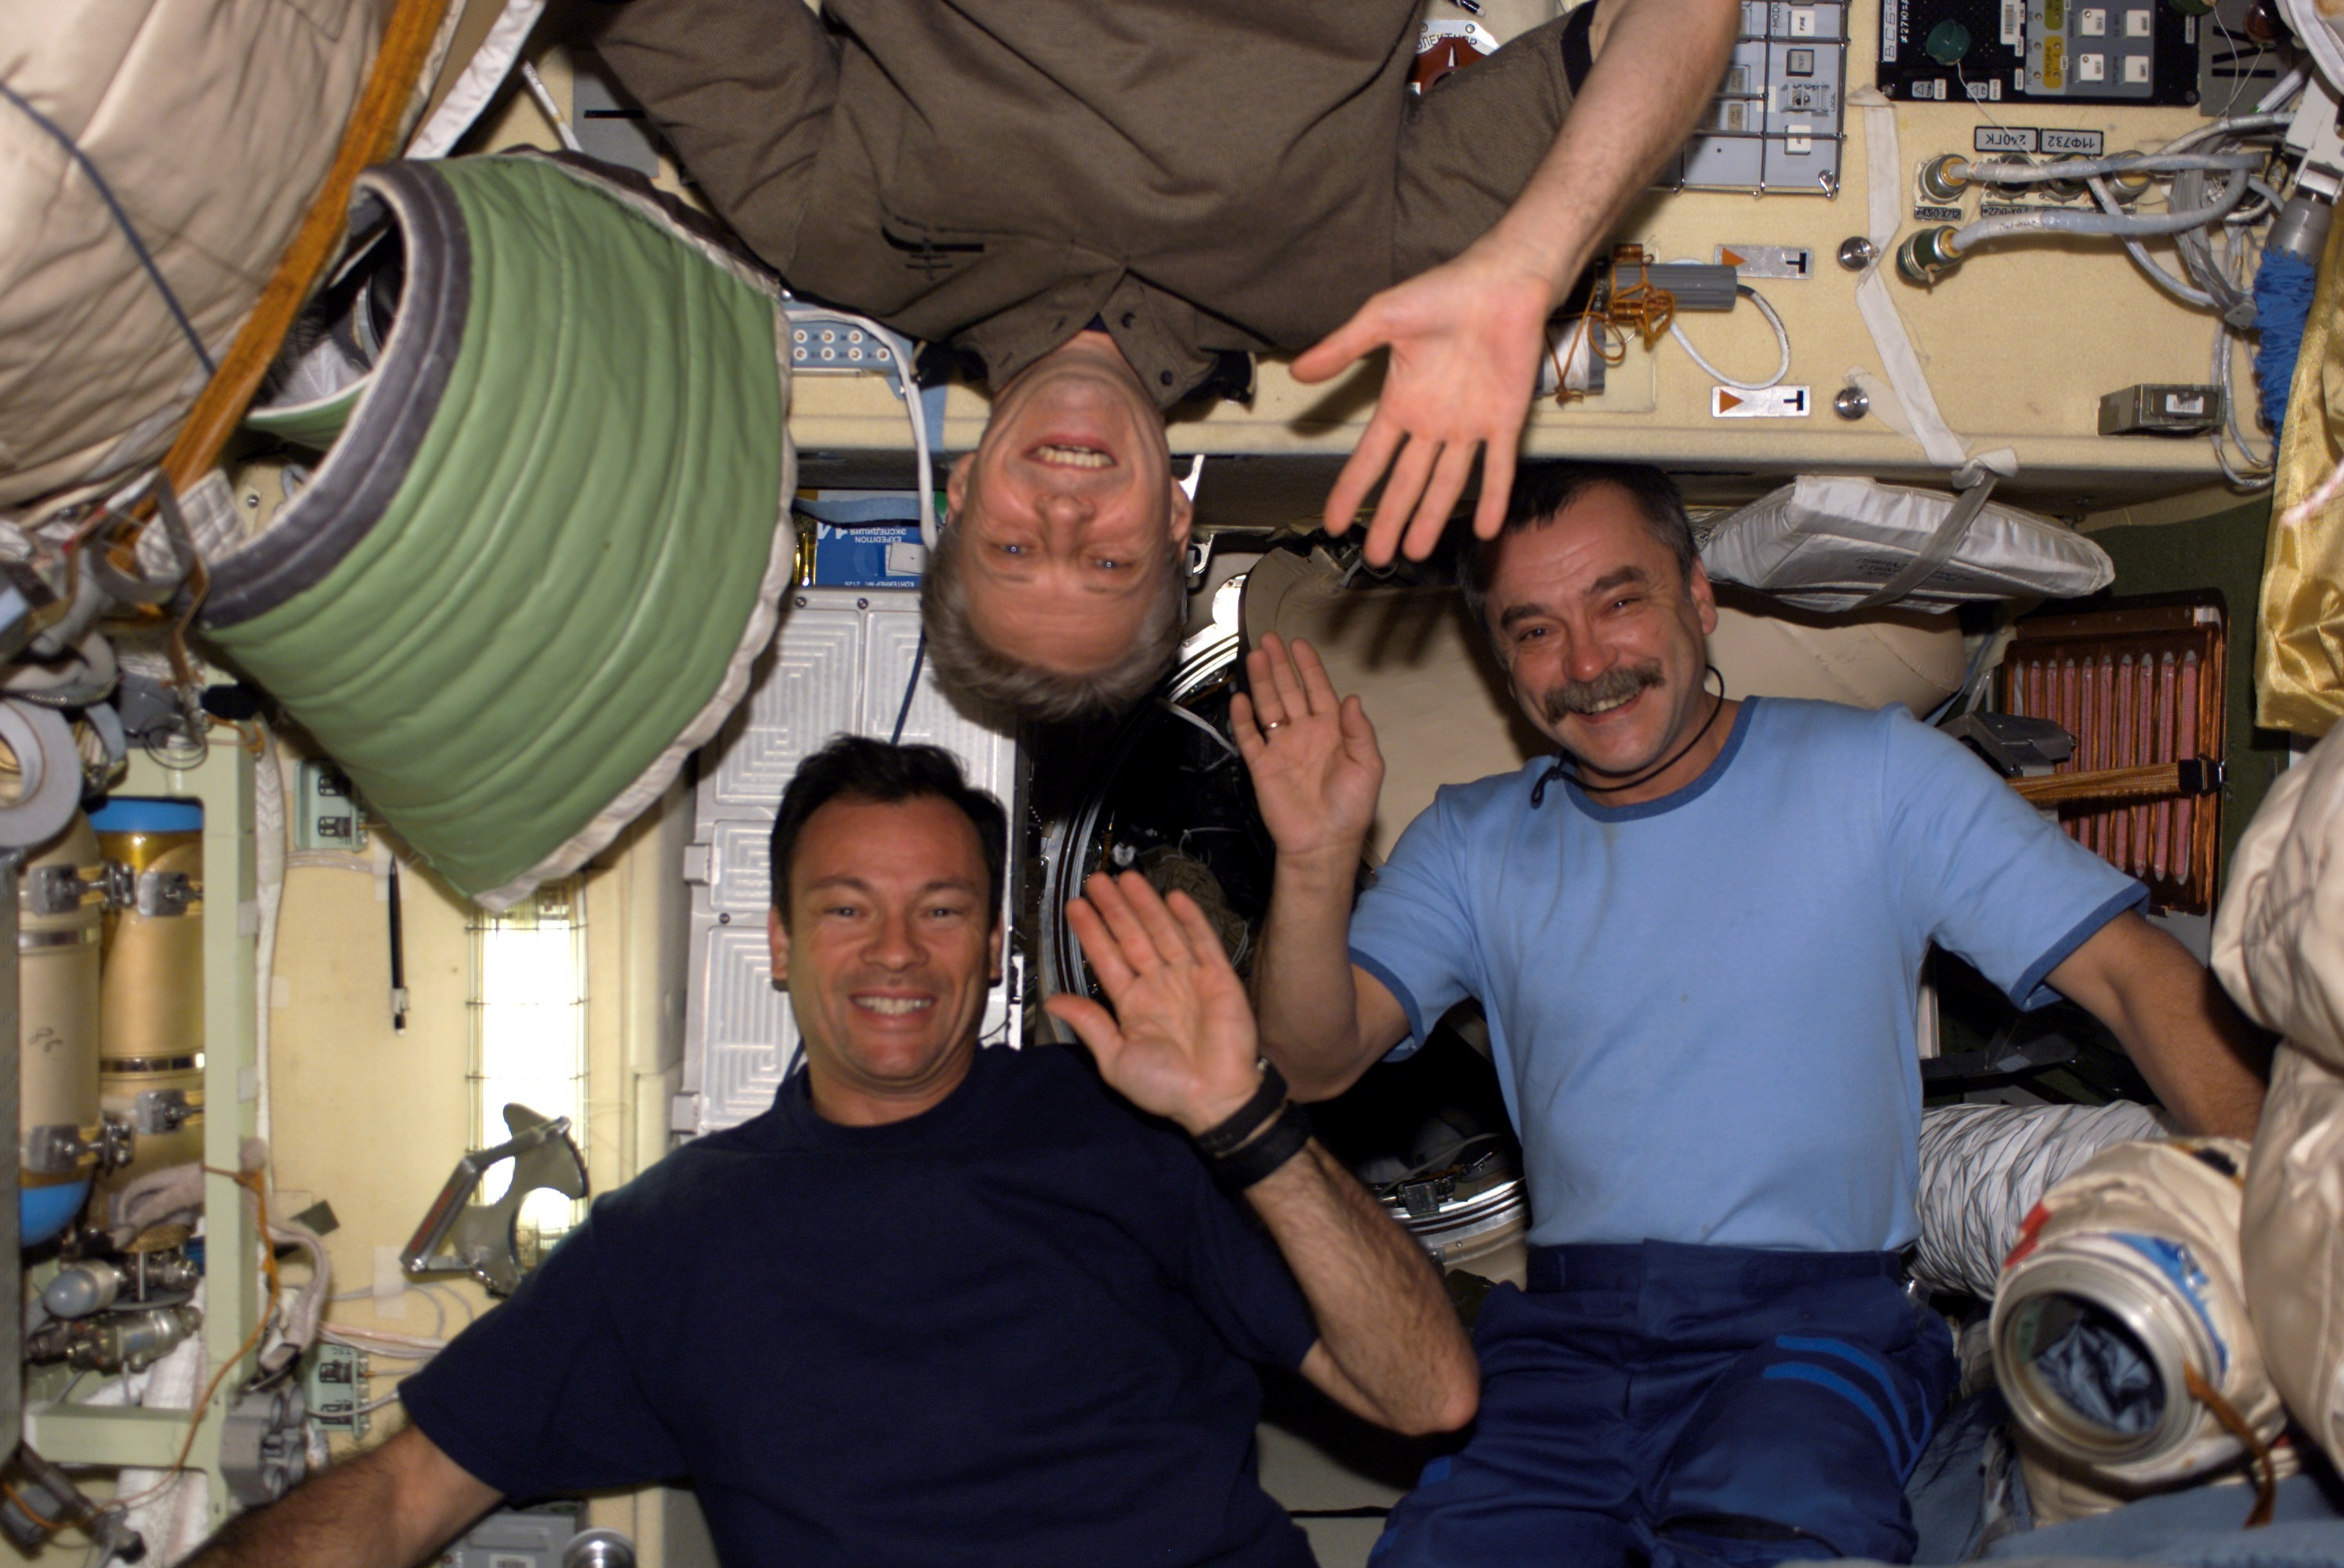 Thomas Reiter, Michael Lopez-Alegria and Mikhail Tyurin post for a picture. Image credit ESA